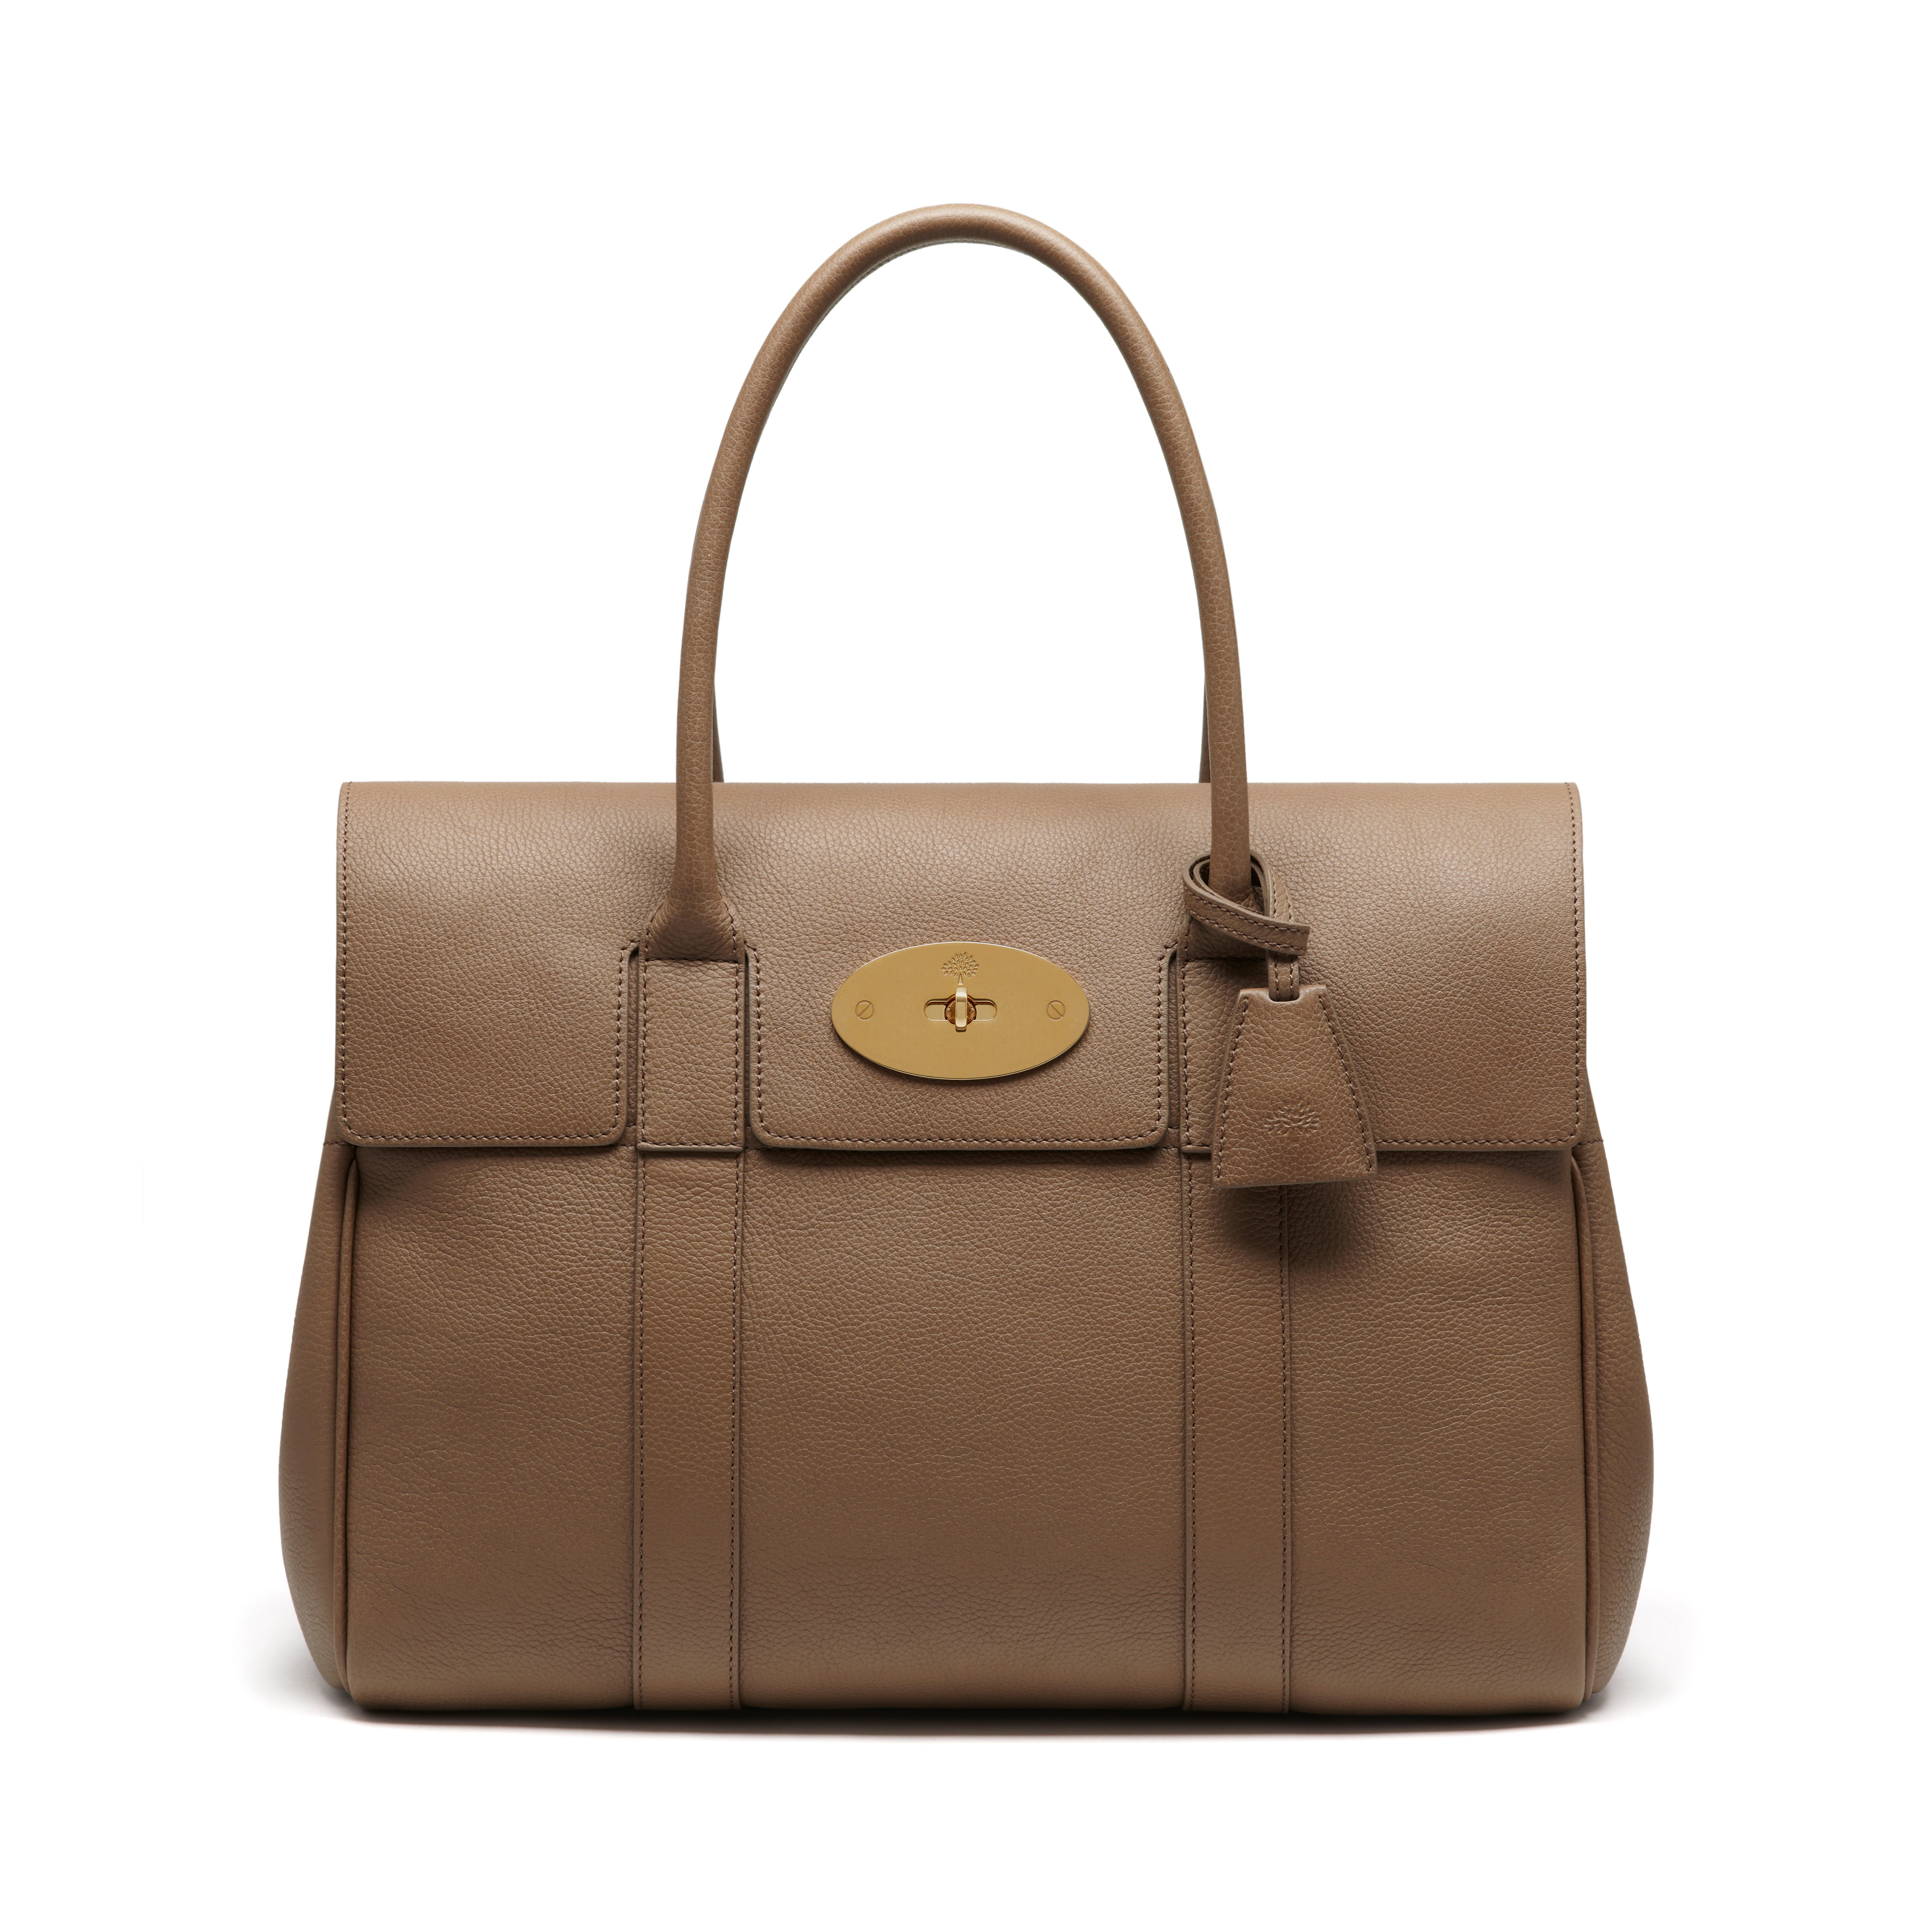 342e2f9e4d Mulberry Bayswater Leather Bag in Natural - Lyst